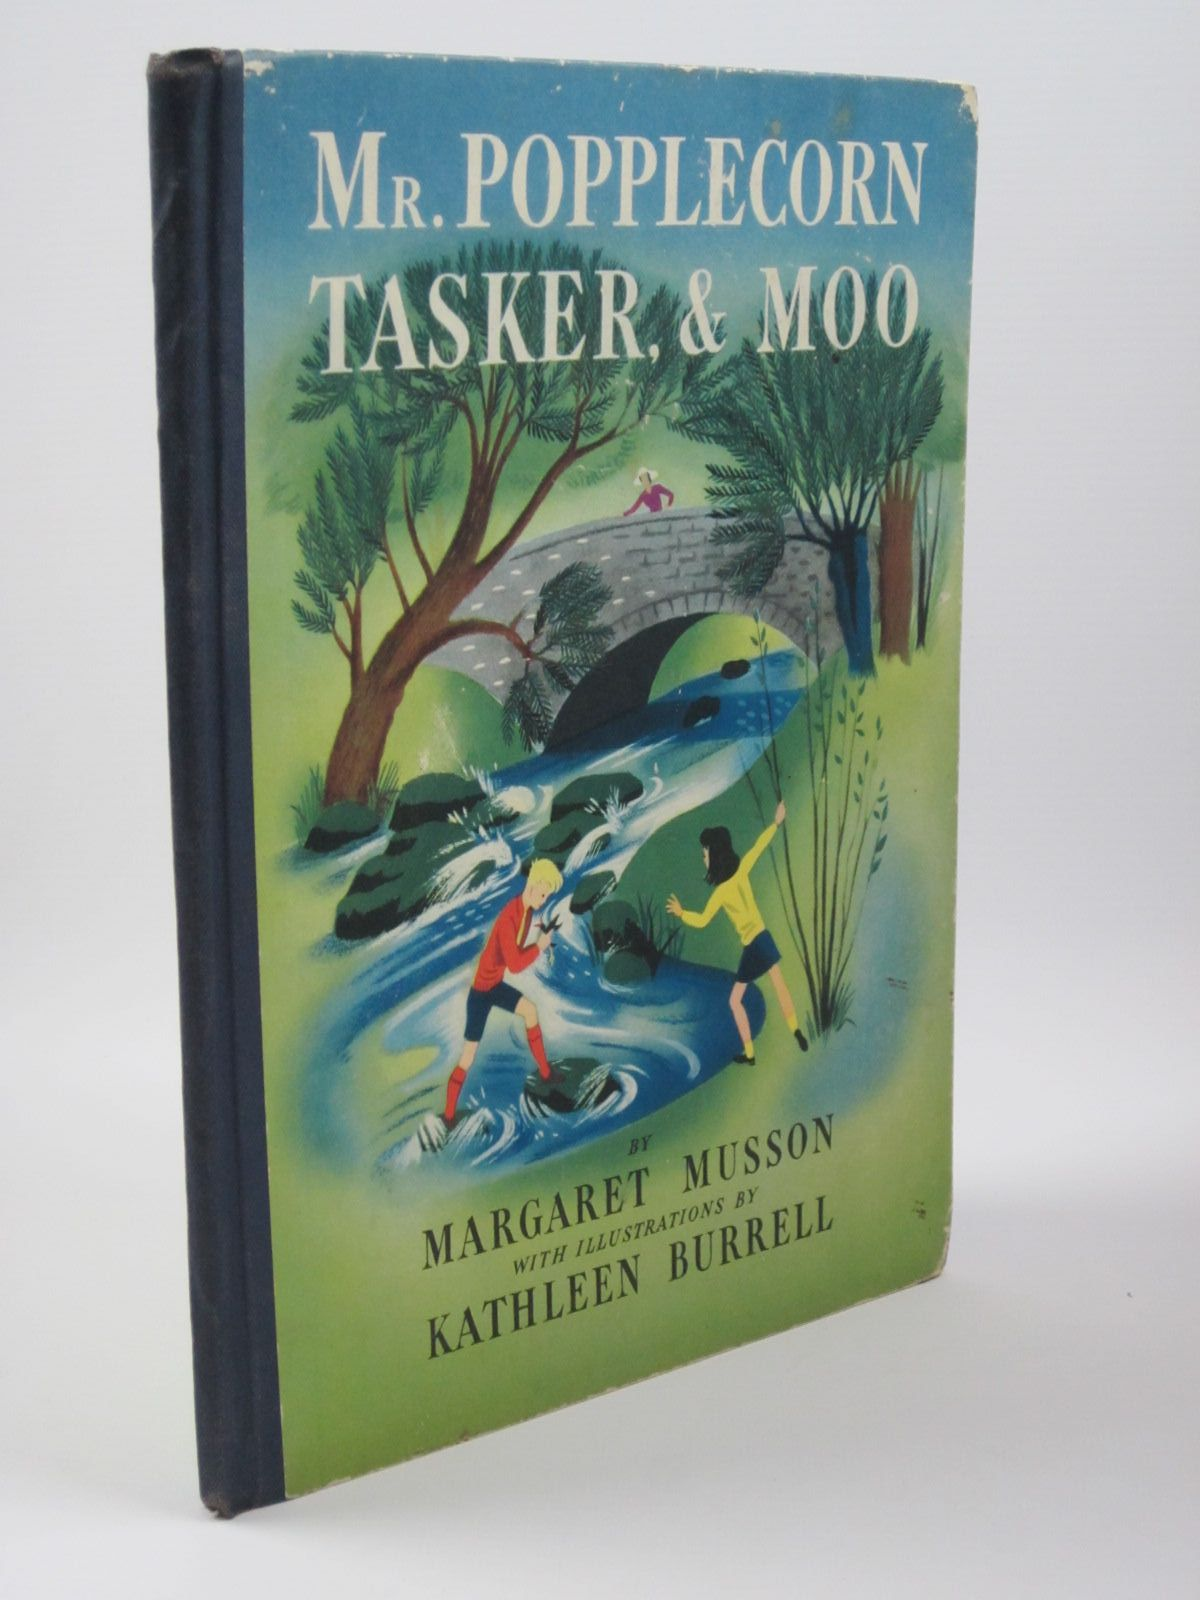 Photo of MR. POPPLECORN TASKER AND MOO written by Musson, Margaret illustrated by Burrell, Kathleen published by George G. Harrap & Co. Ltd. (STOCK CODE: 1401544)  for sale by Stella & Rose's Books